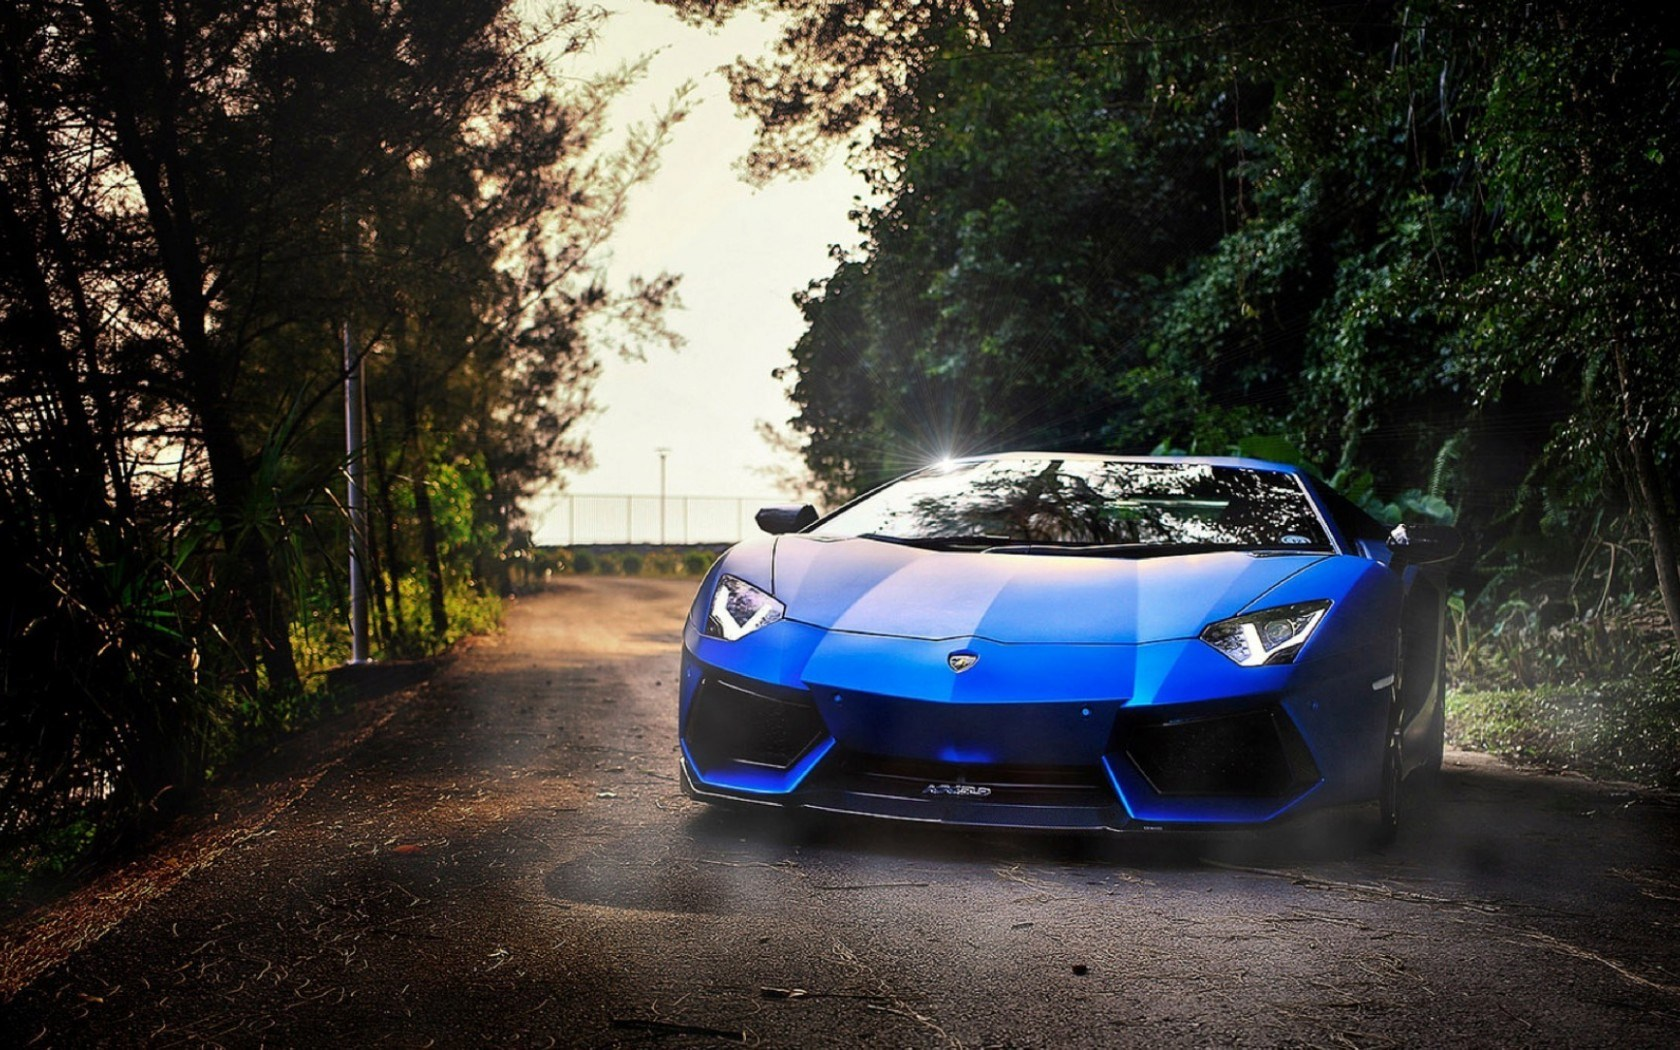 Download Lamborghini Wallpapers In Hd For Desktop And Hd Car Wallpapers Lamborghini 1680x1050 Download Hd Wallpaper Wallpapertip